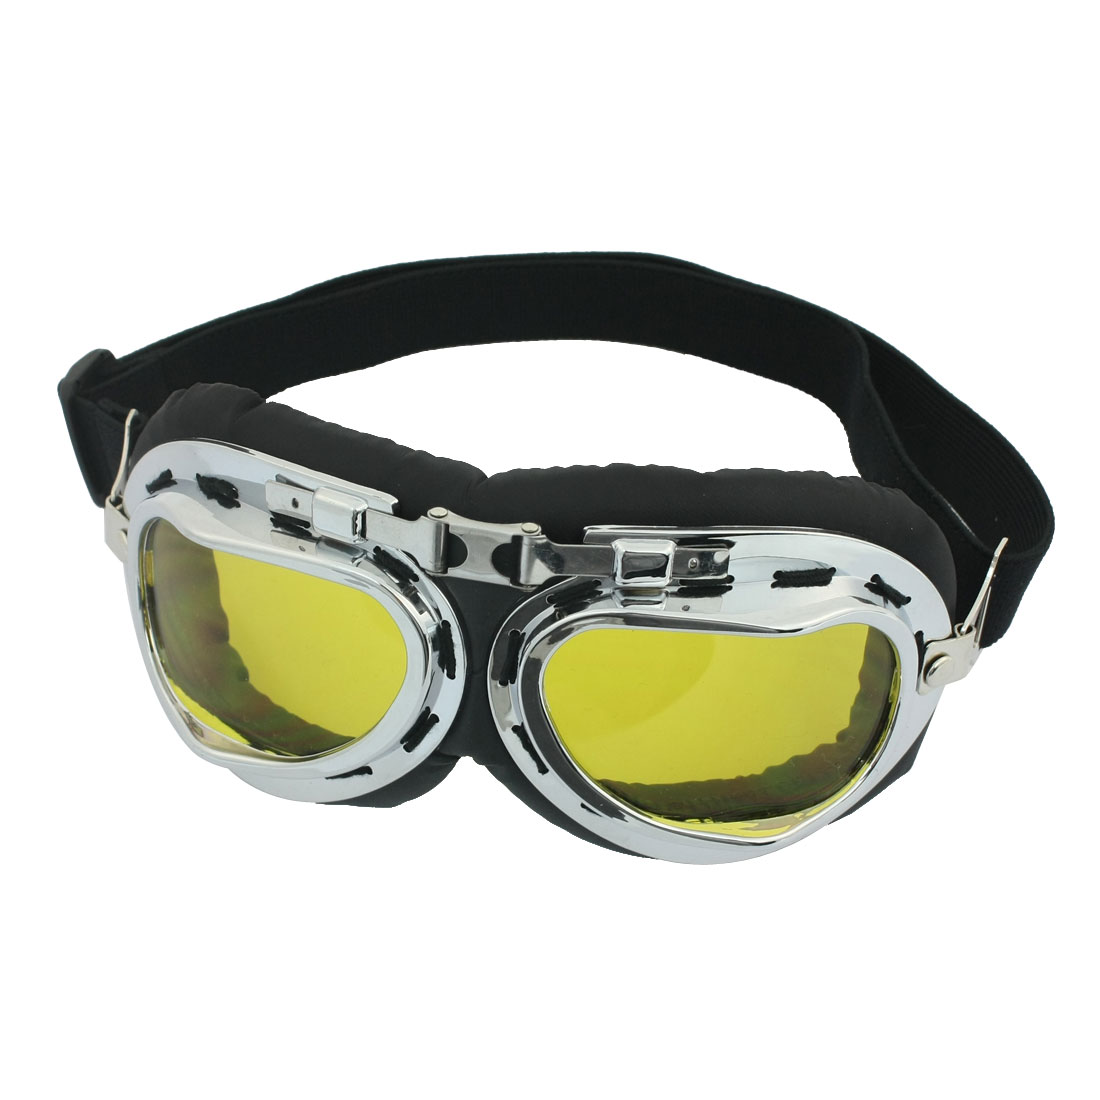 Unisex Metal Frame Full Rim Elastic Head Band Ski Goggles Glasees by Unique-Bargains